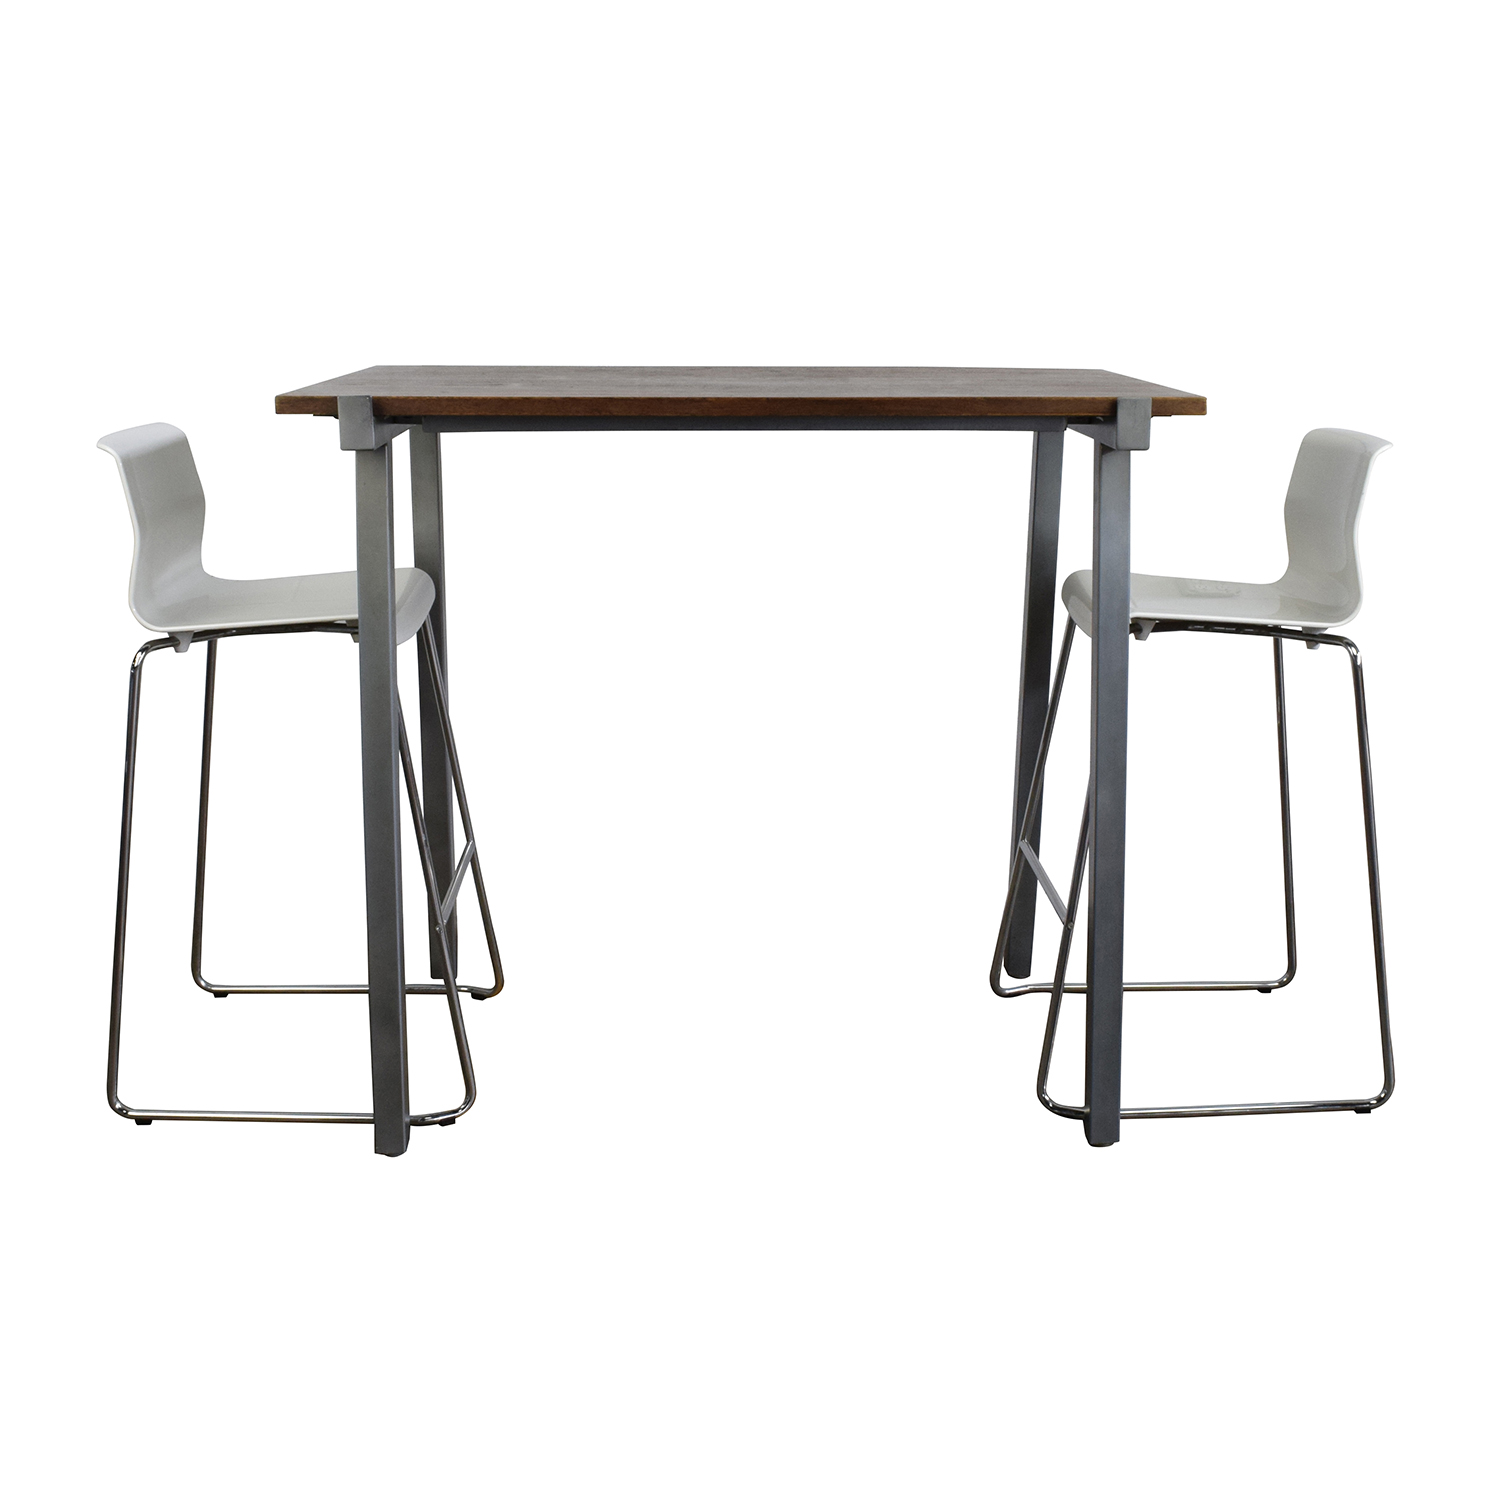 High Dining Table And Chairs: CB2 CB2 High Dining Table And Chairs Set / Tables